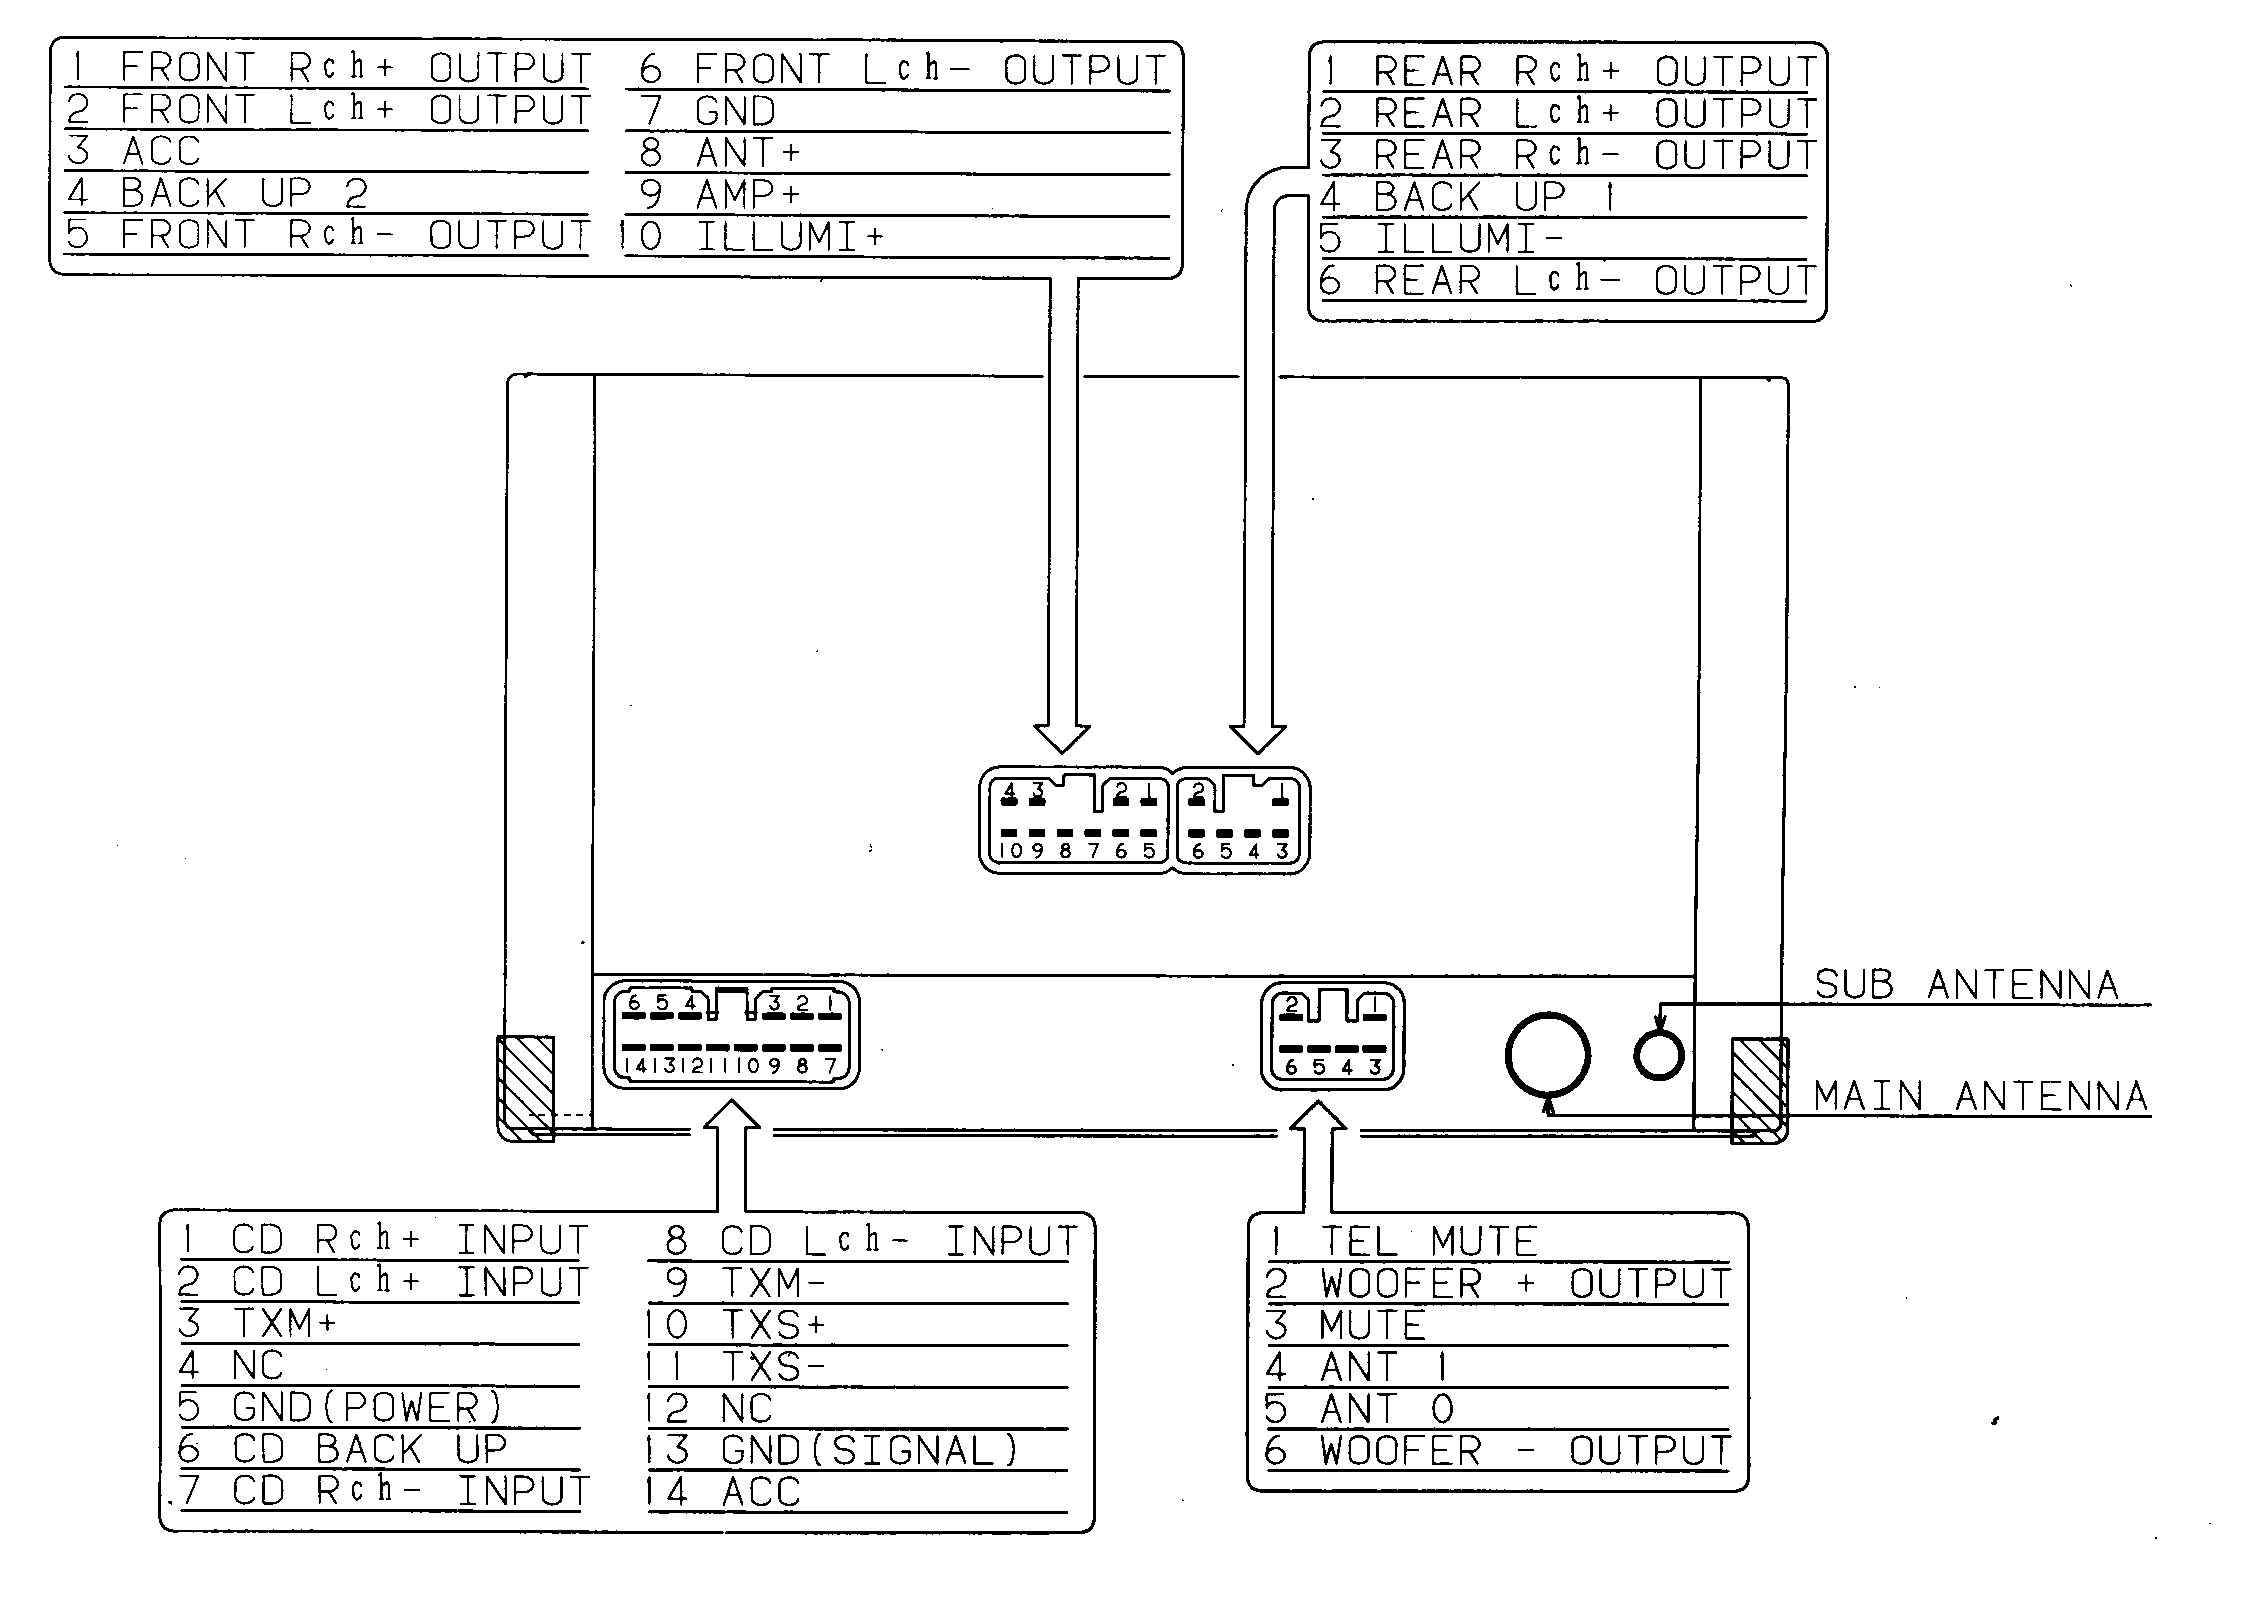 93 Lexus Gs300 Radio Diagram | Wiring Diagram on